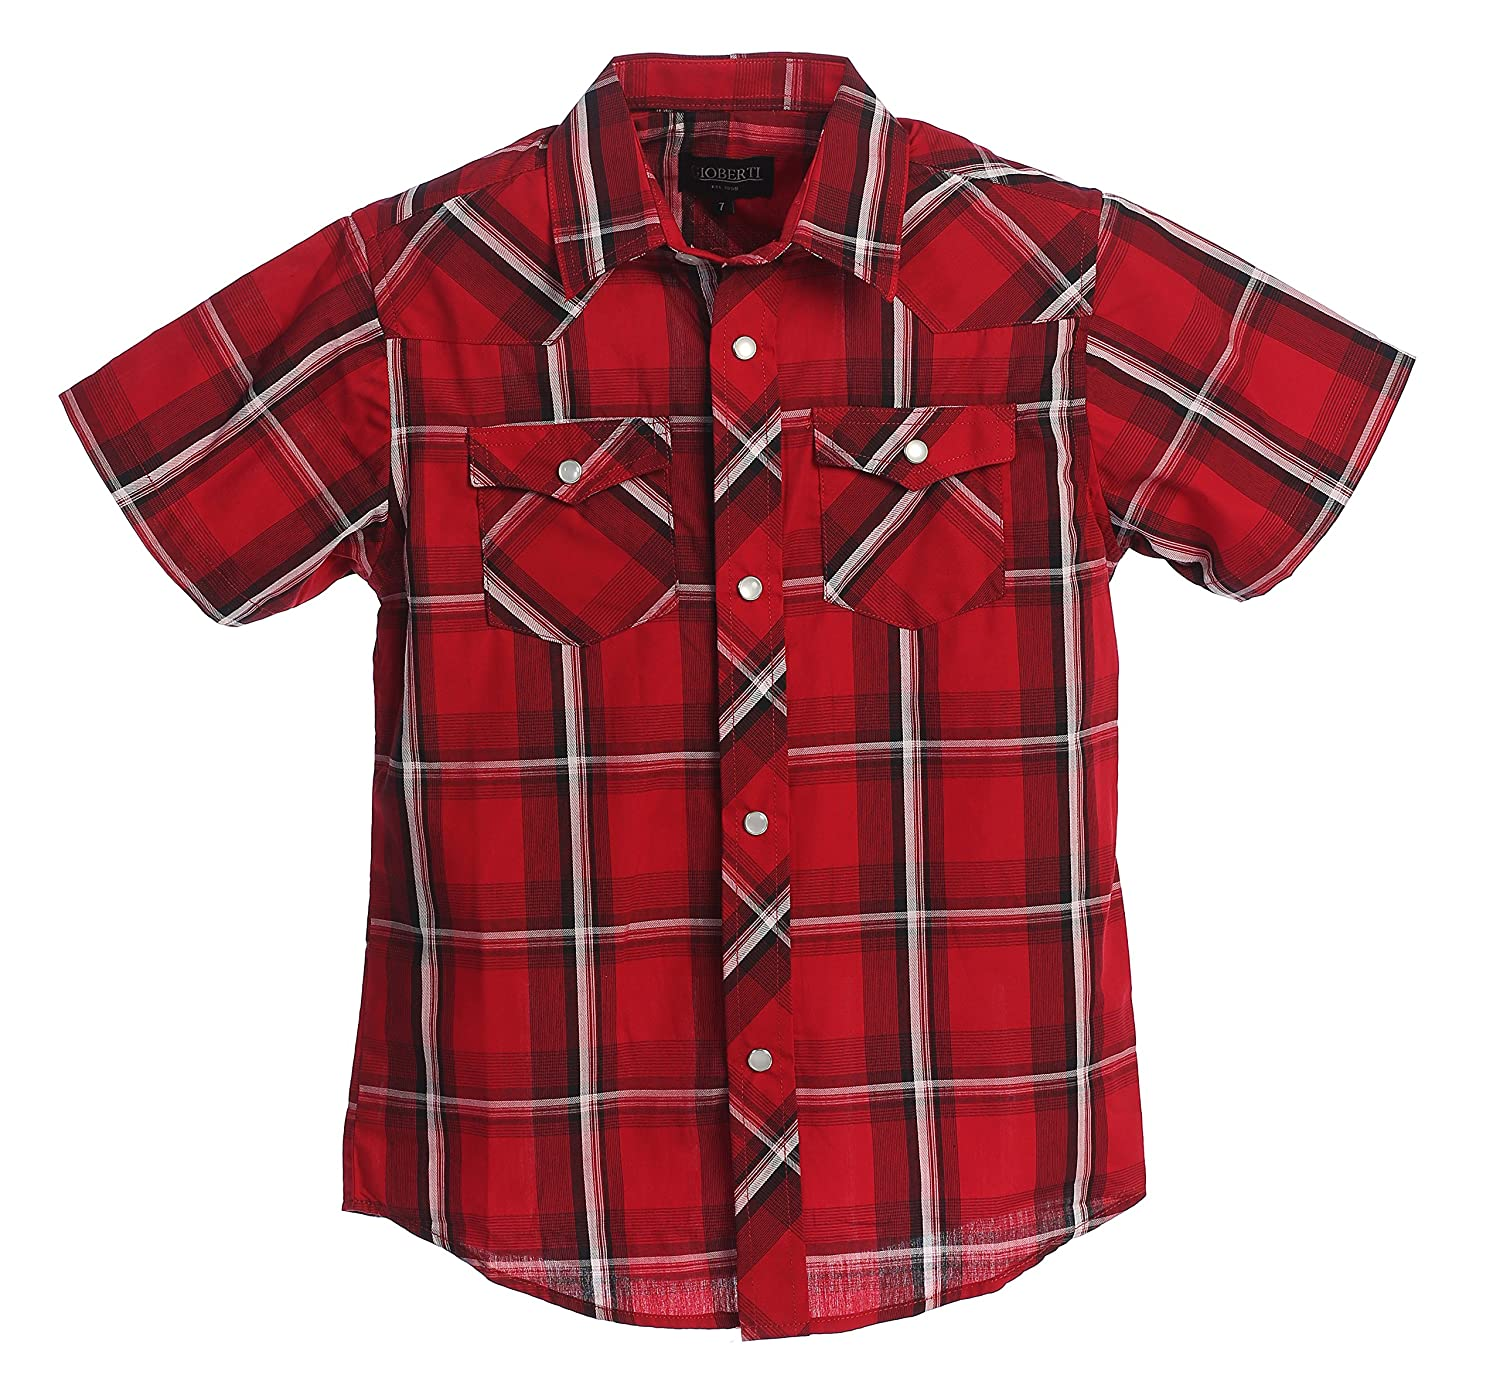 Kids 1950s Clothing & Costumes: Girls, Boys, Toddlers Gioberti Boys Casual Western Plaid Pearl Snap Short Sleeve Shirt $80.00 AT vintagedancer.com